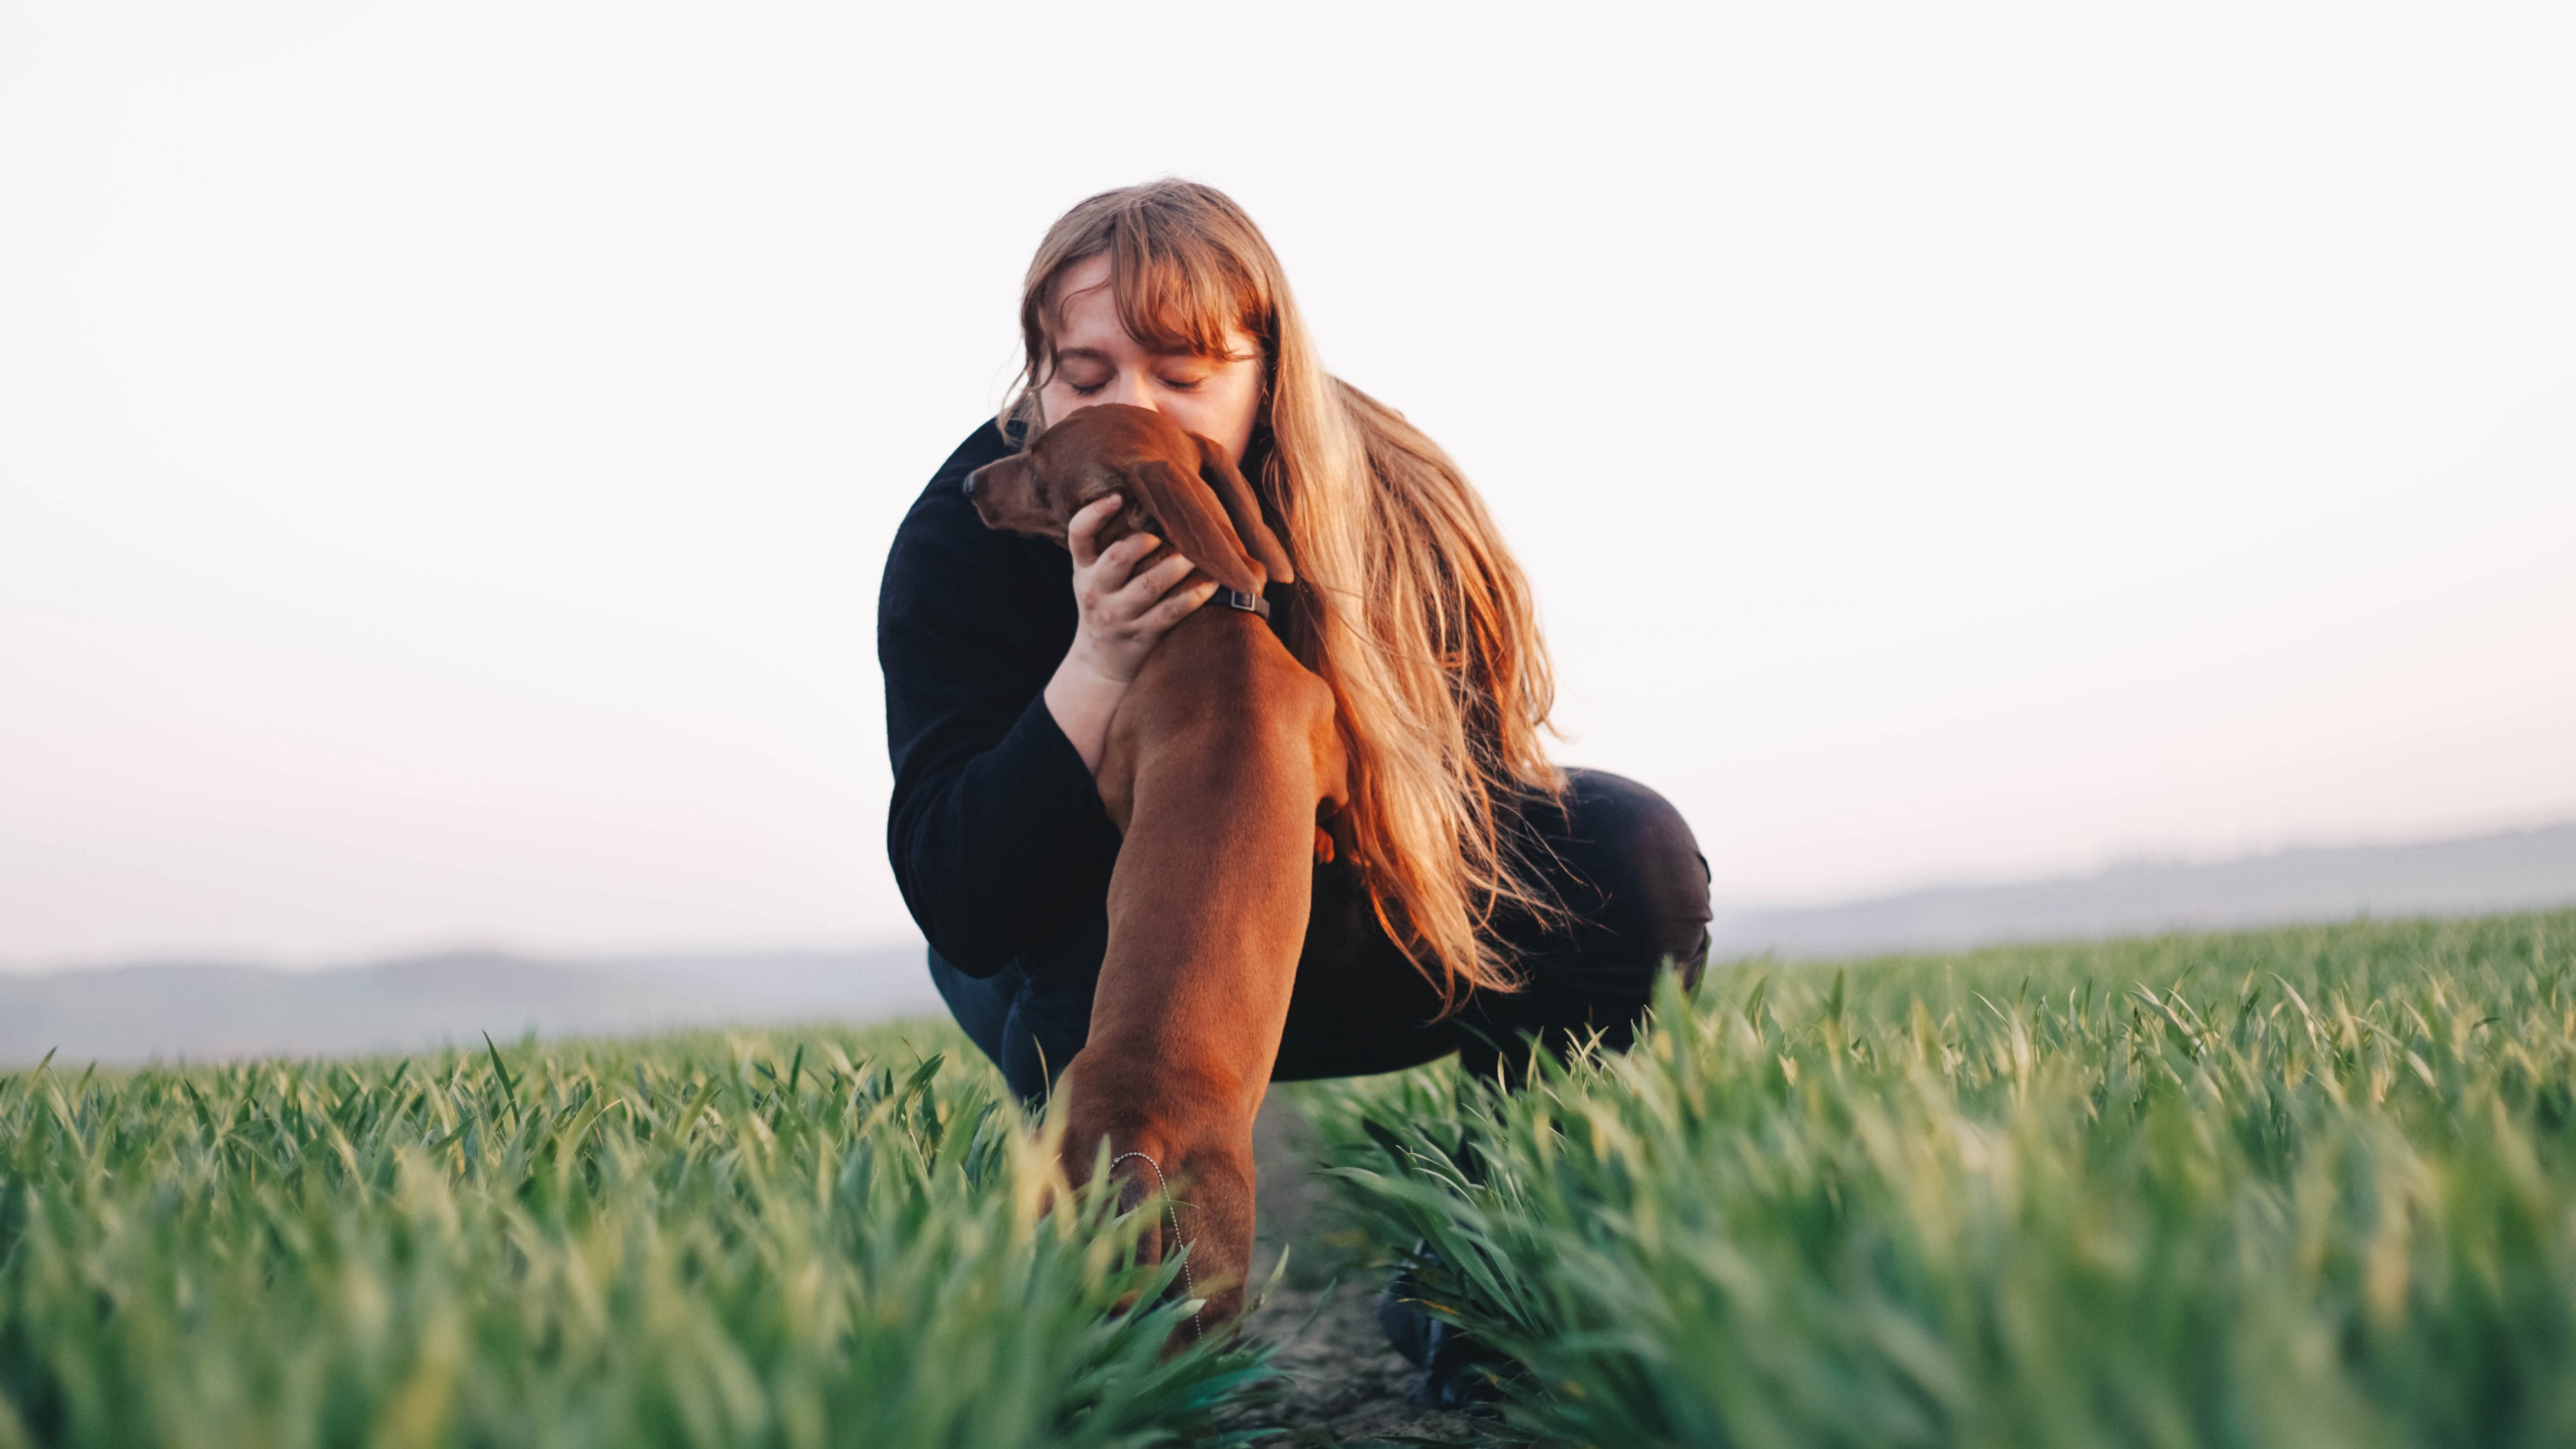 Lady kissing a dog in a green field